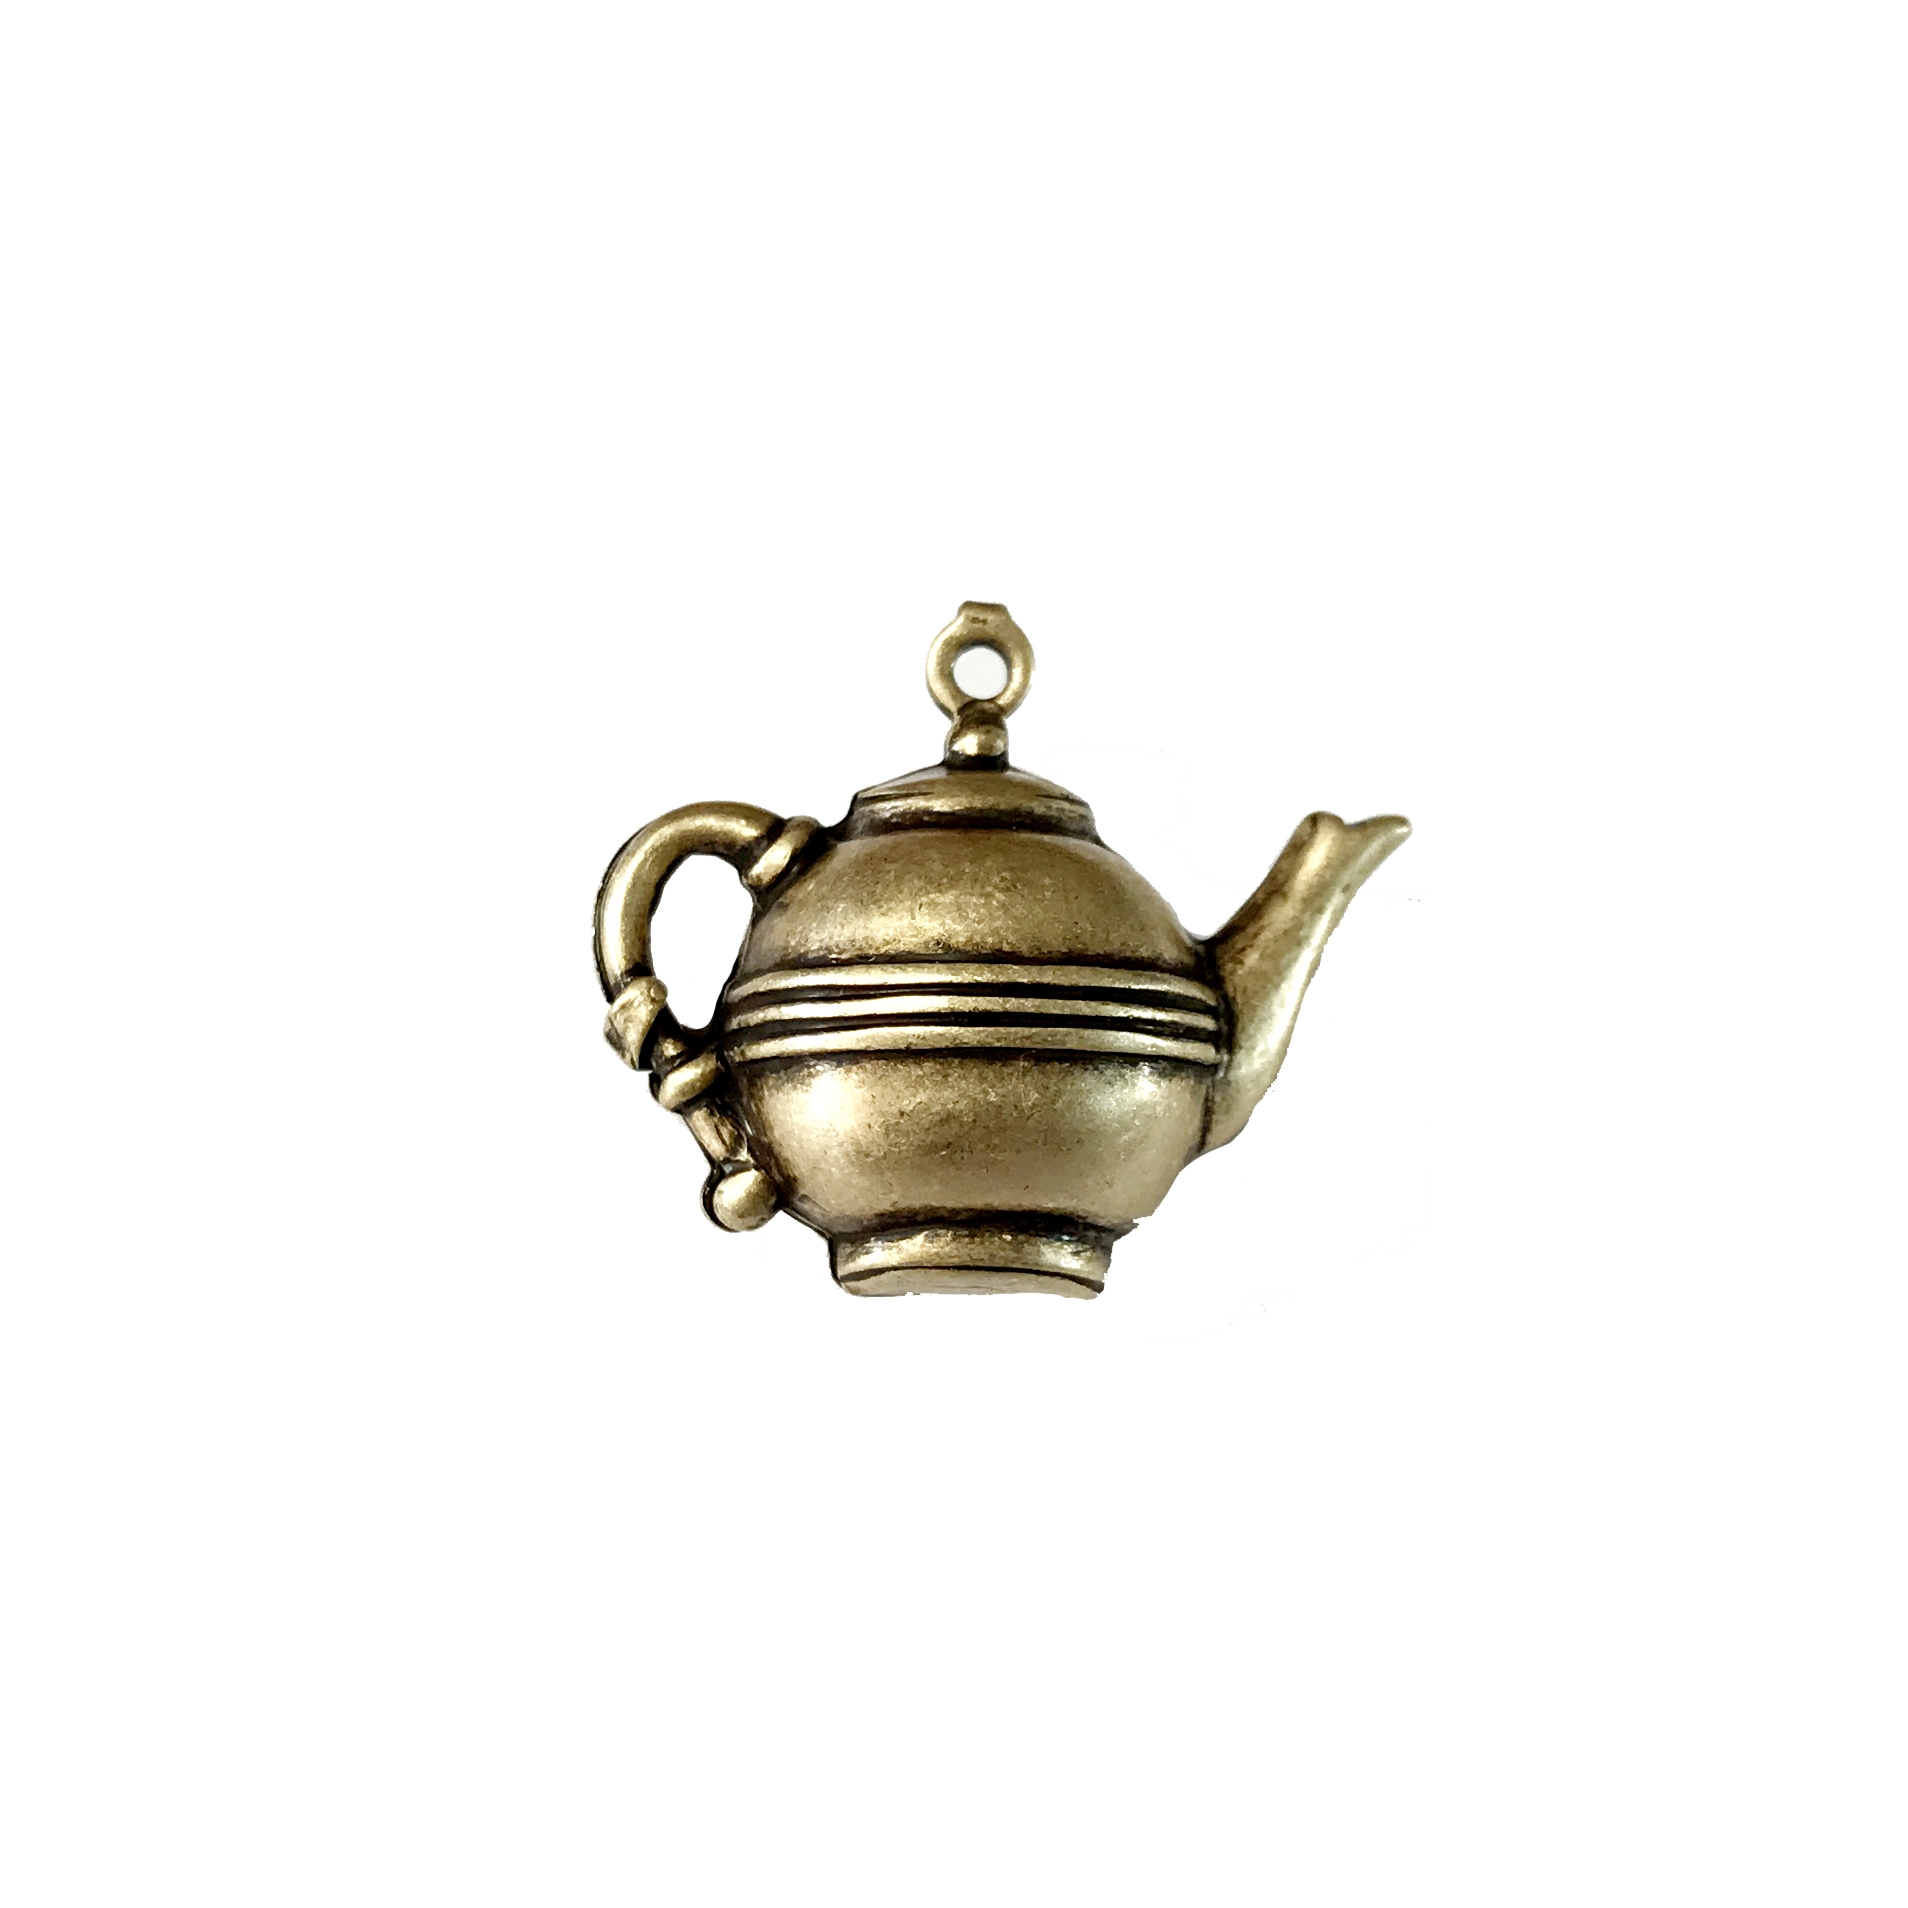 teapot, brass ox, charms, pendant, vintage style, 3d hollow, brass, tea, hollow charm, tea pot, pot, antique brass, doll tea pot, us made, nickel free, B'sue Boutiques, vintage supplies, jewelry supplies, jewelry findings, 14x21mm, brass, tea, 06333